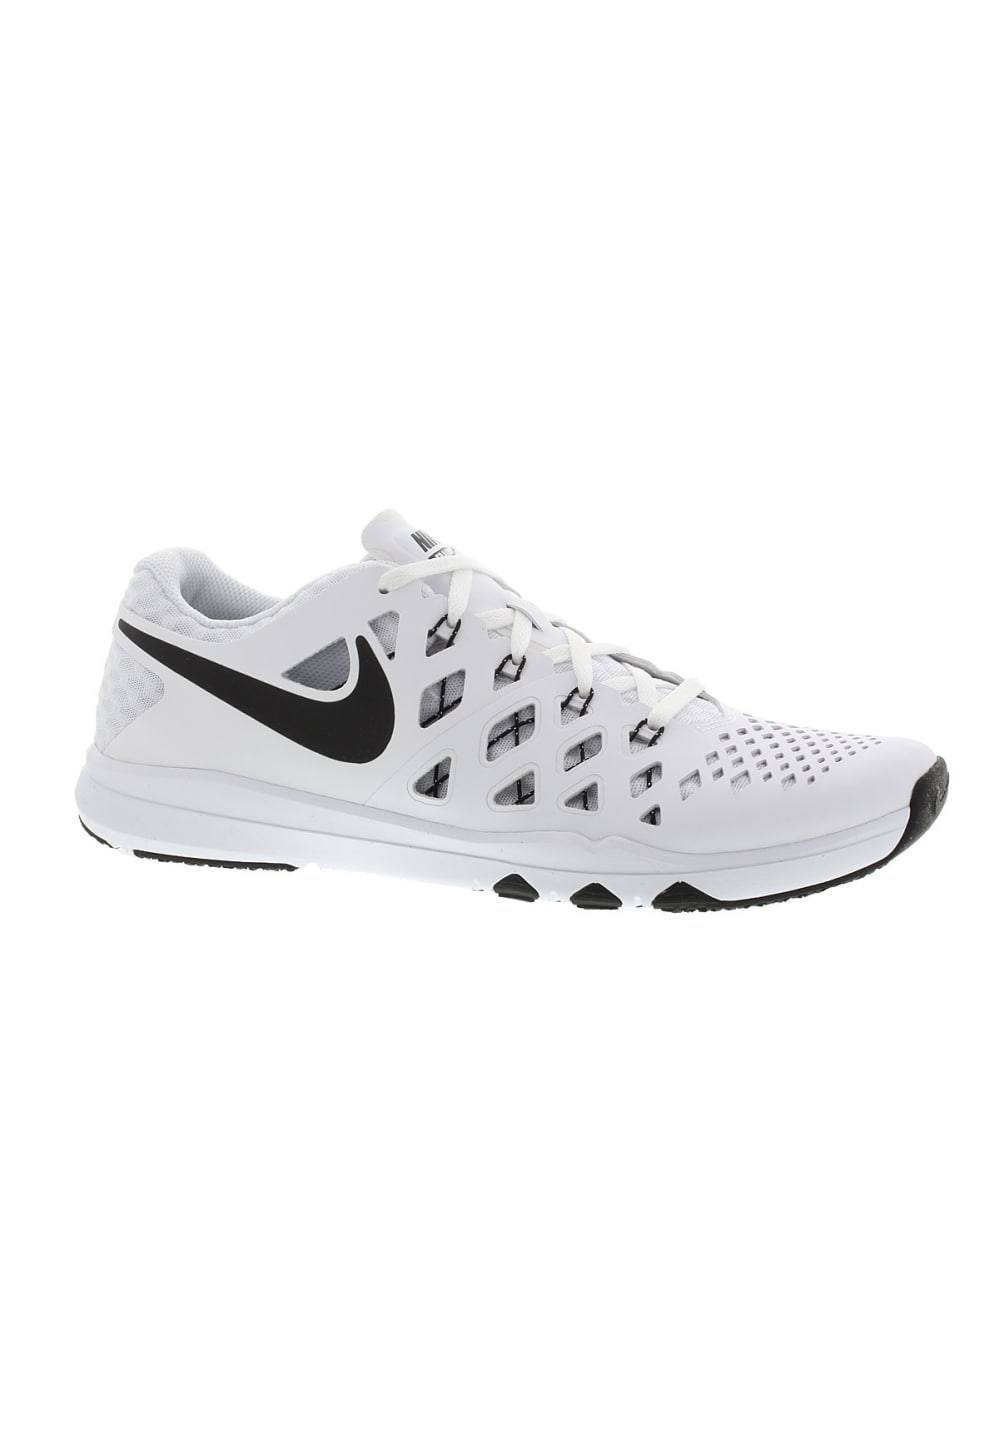 37d46f5256c20 Nike Zoom Train Speed 4 - Fitness shoes for Men - White | 21RUN